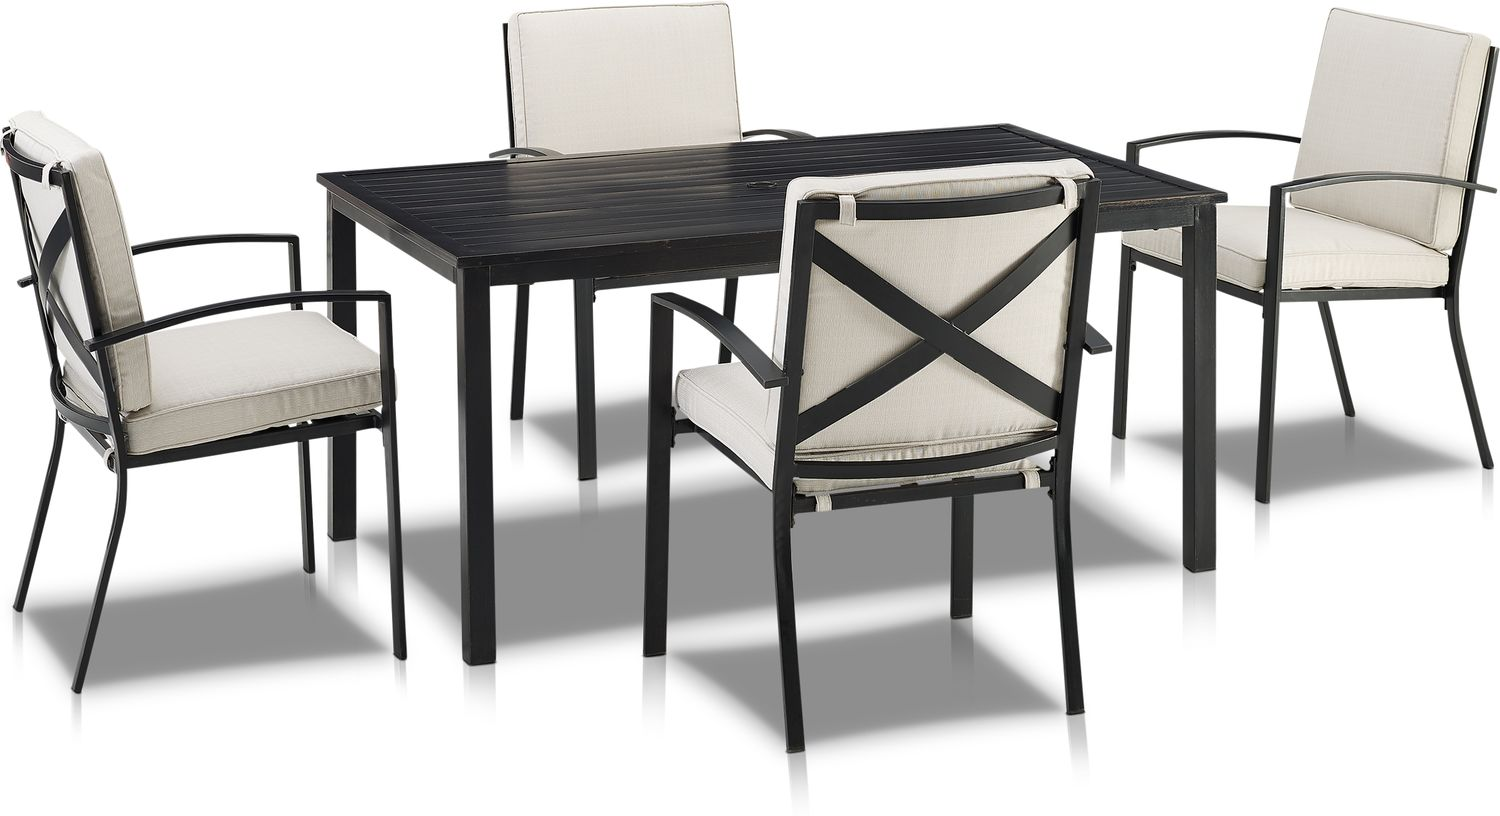 Outdoor Furniture - Clarion Outdoor Dining Table and 4 Dining Chairs